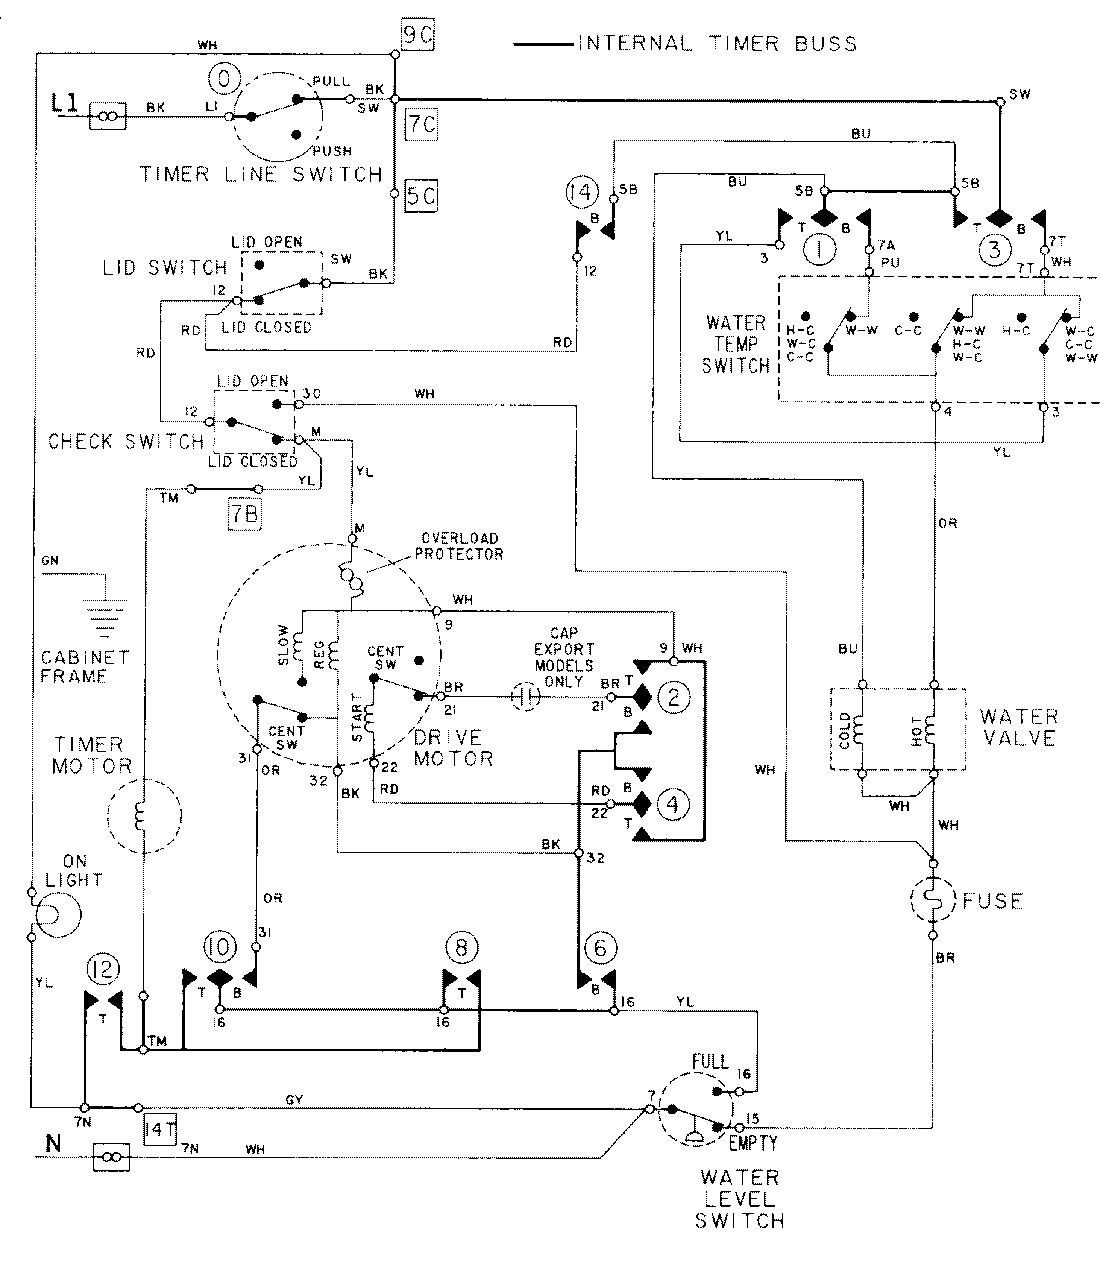 washer wire diagram washing machine spin motor wiring washing image wiring diagram for a washer the wiring diagram on